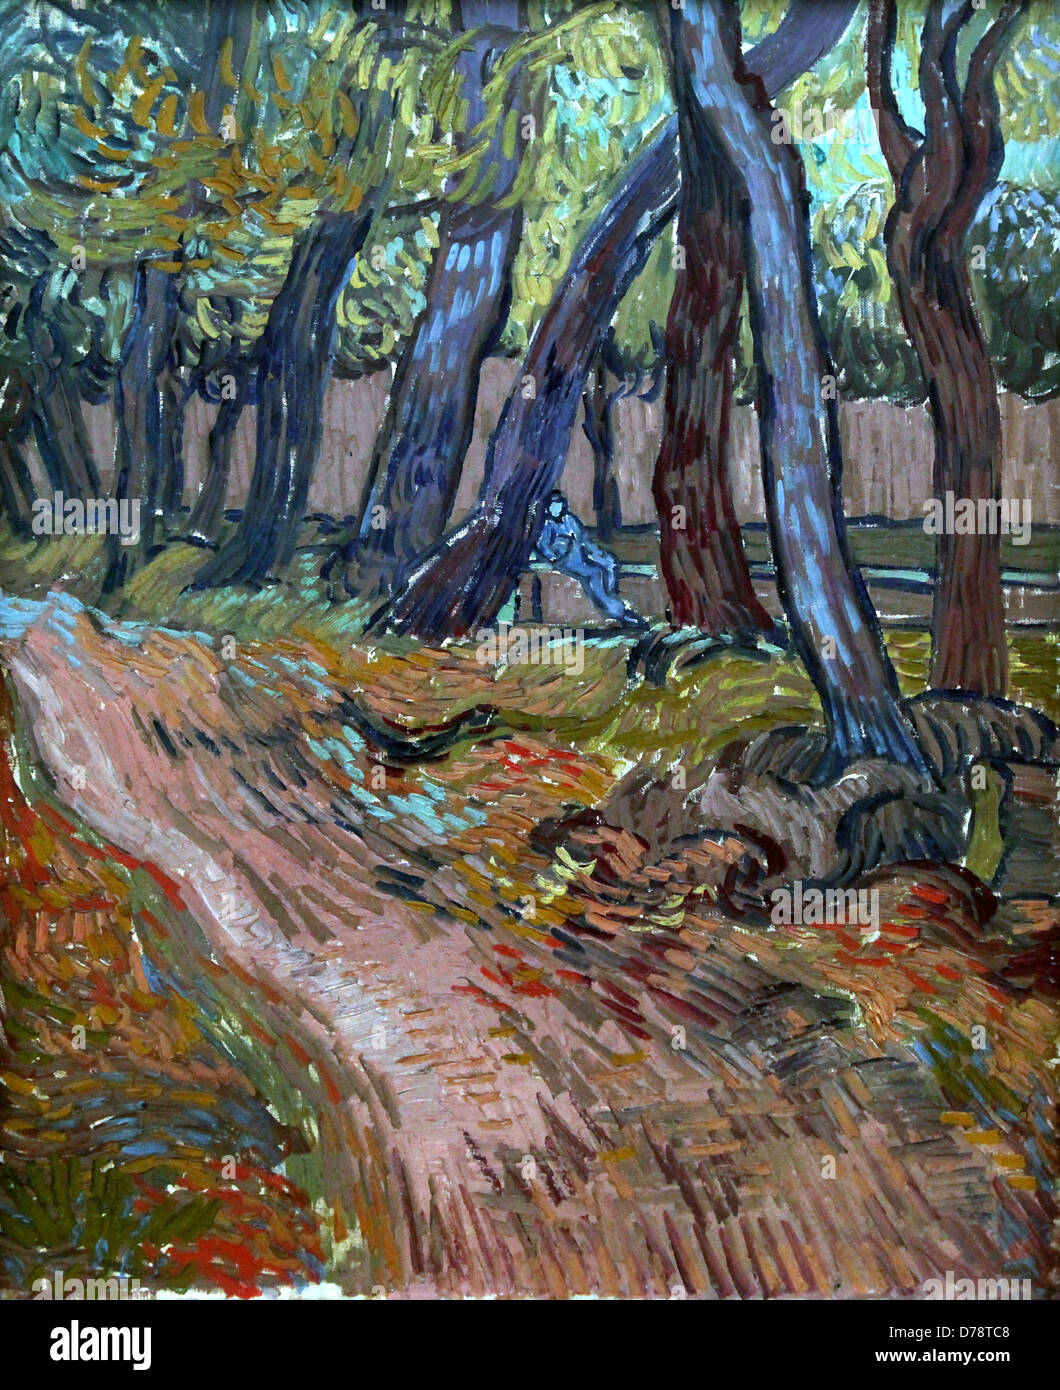 Vincent van Gogh.Path in the garden of the asylum.Siant-Rémy.november 1889. - Stock Image